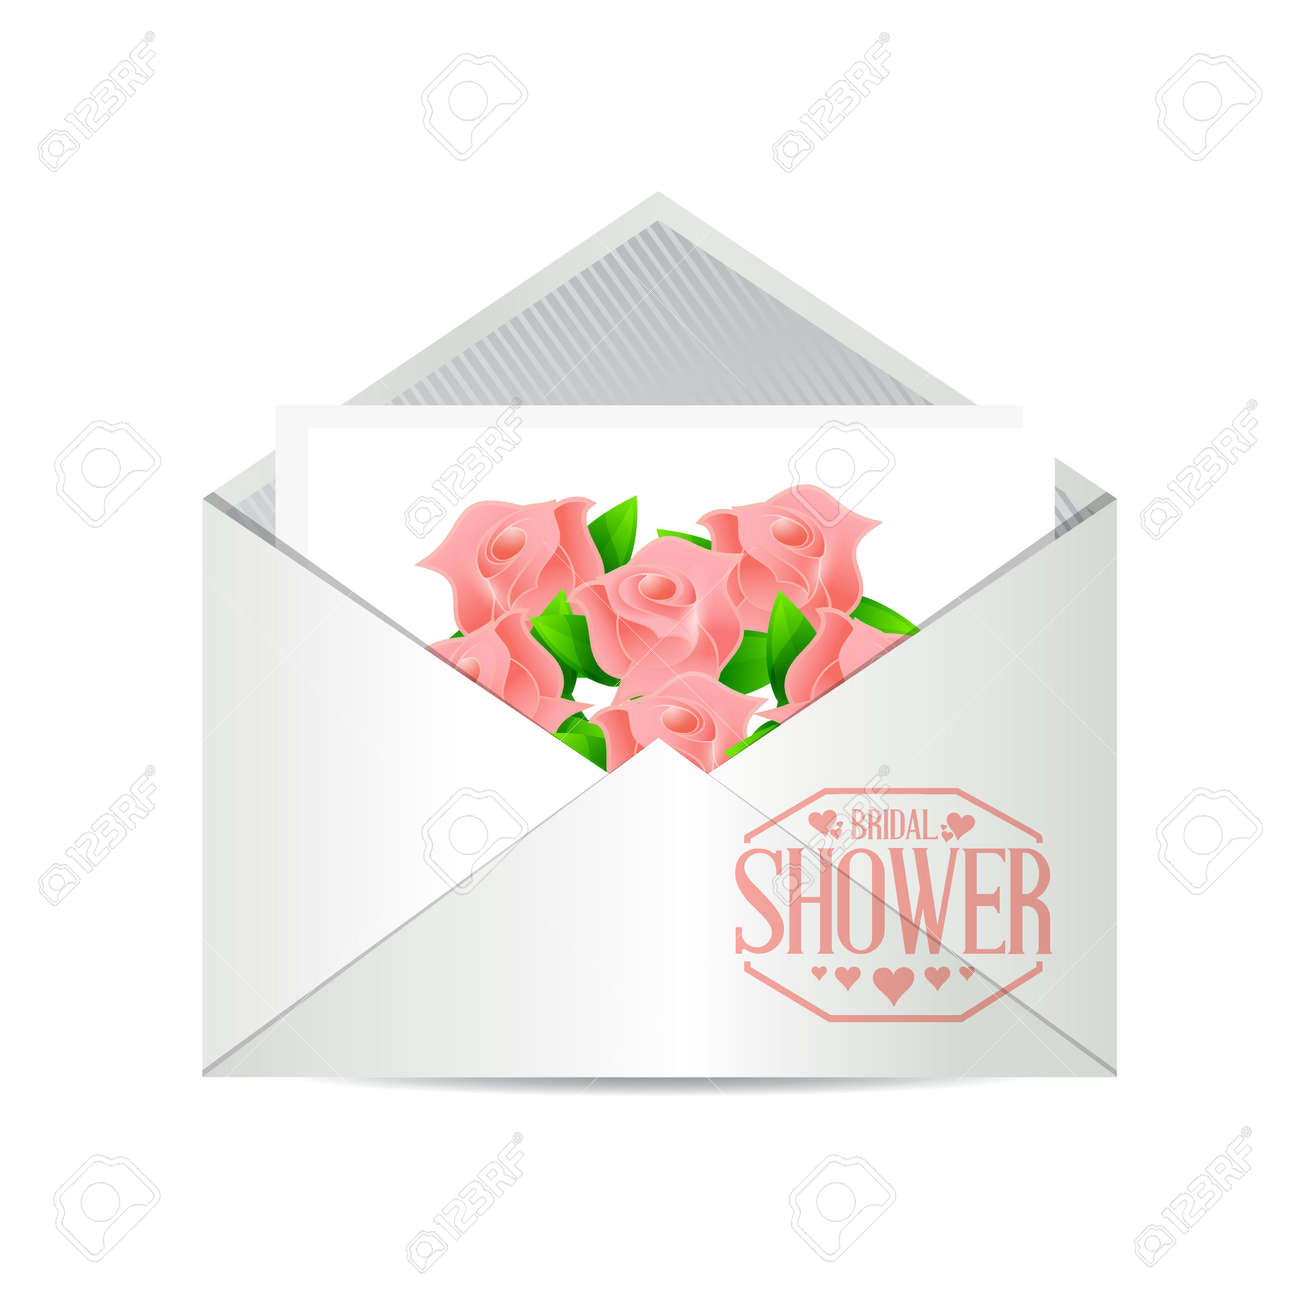 bridal shower envelope invite sign illustration design graphic